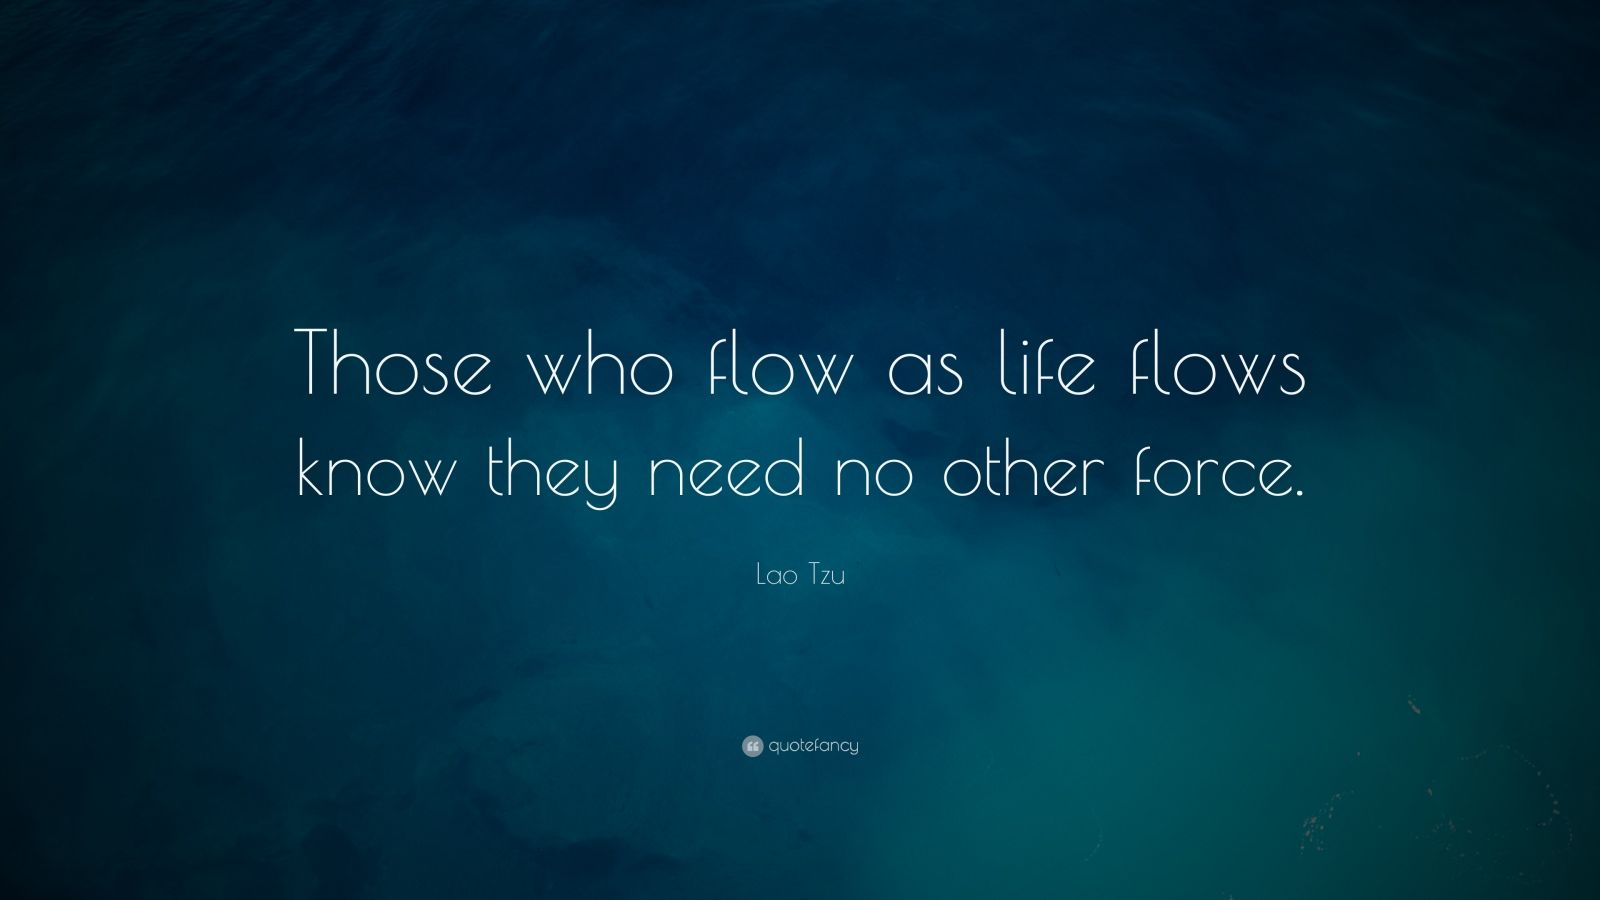 Lao Tzu Quotes Life Custom Lao Tzu Quotes 94 Wallpapers  Quotefancy